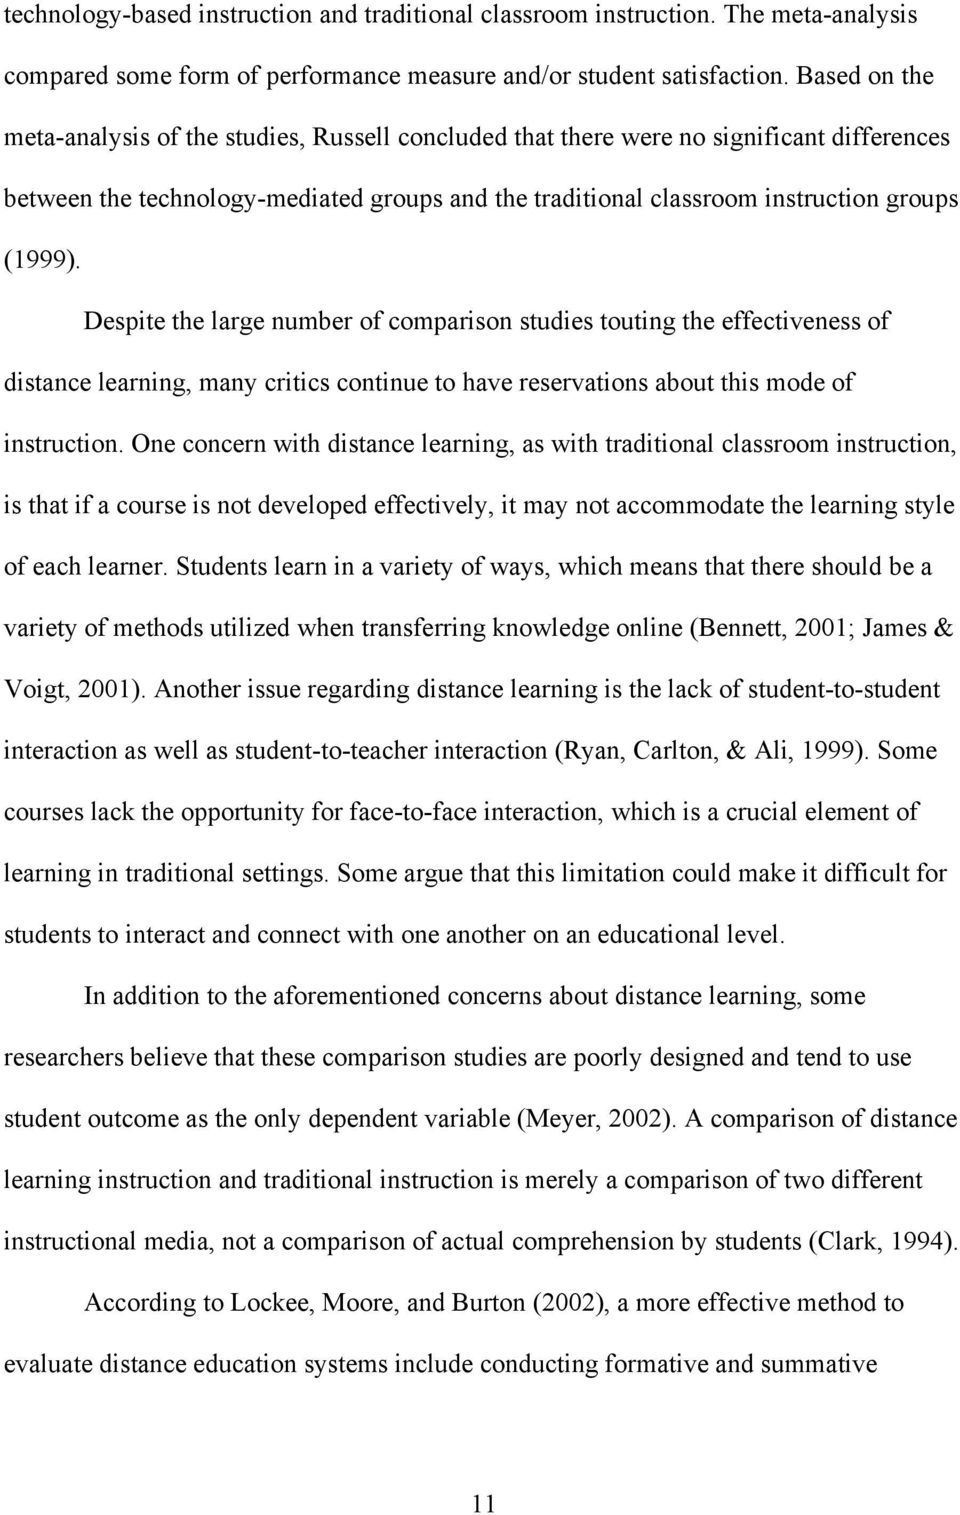 Despite the large number of comparison studies touting the effectiveness of distance learning, many critics continue to have reservations about this mode of instruction.